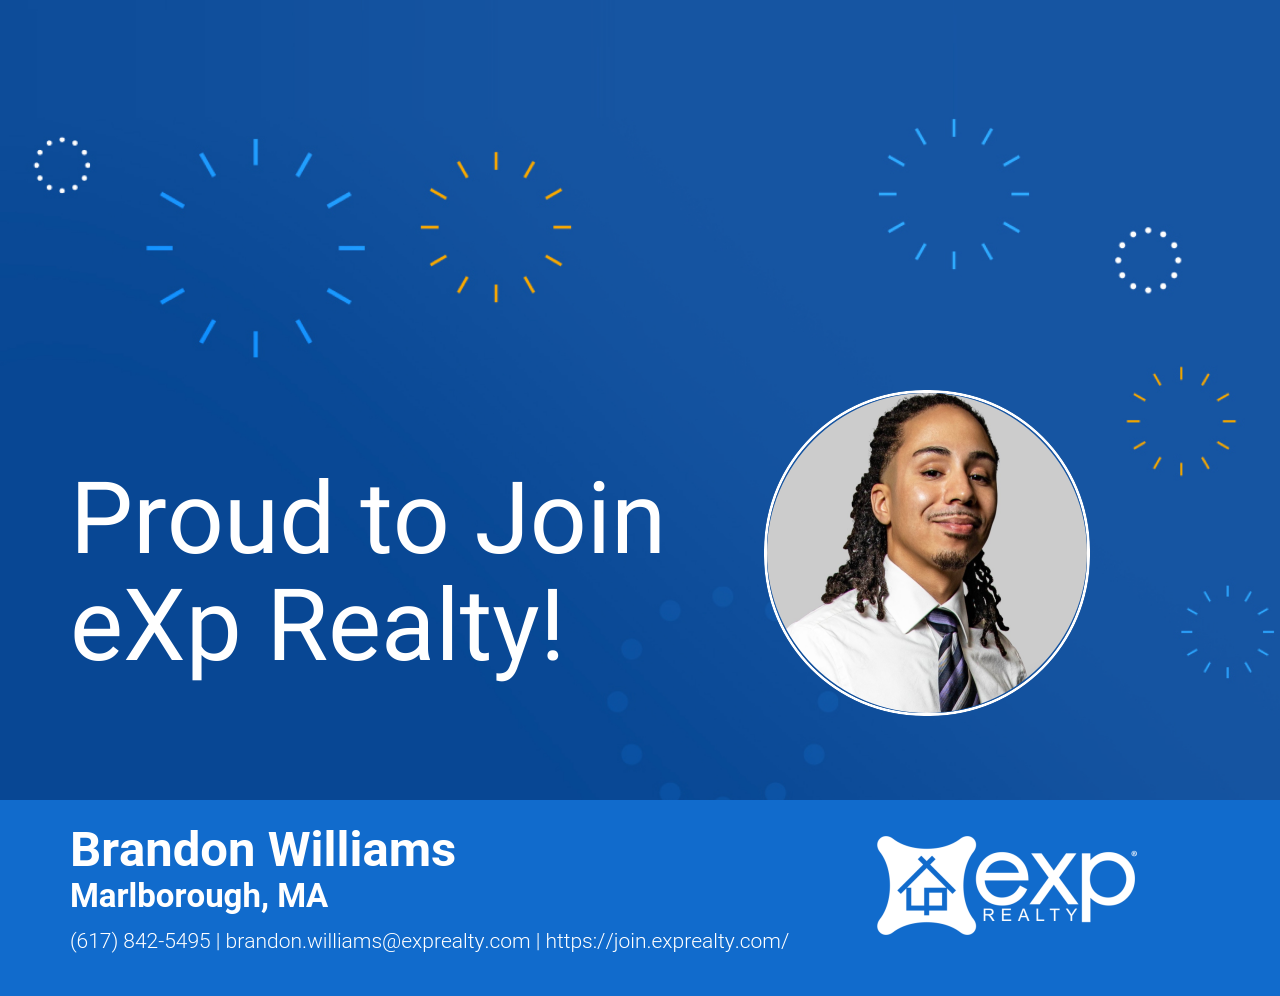 eXp Realty Welcomes Brandon Williams!